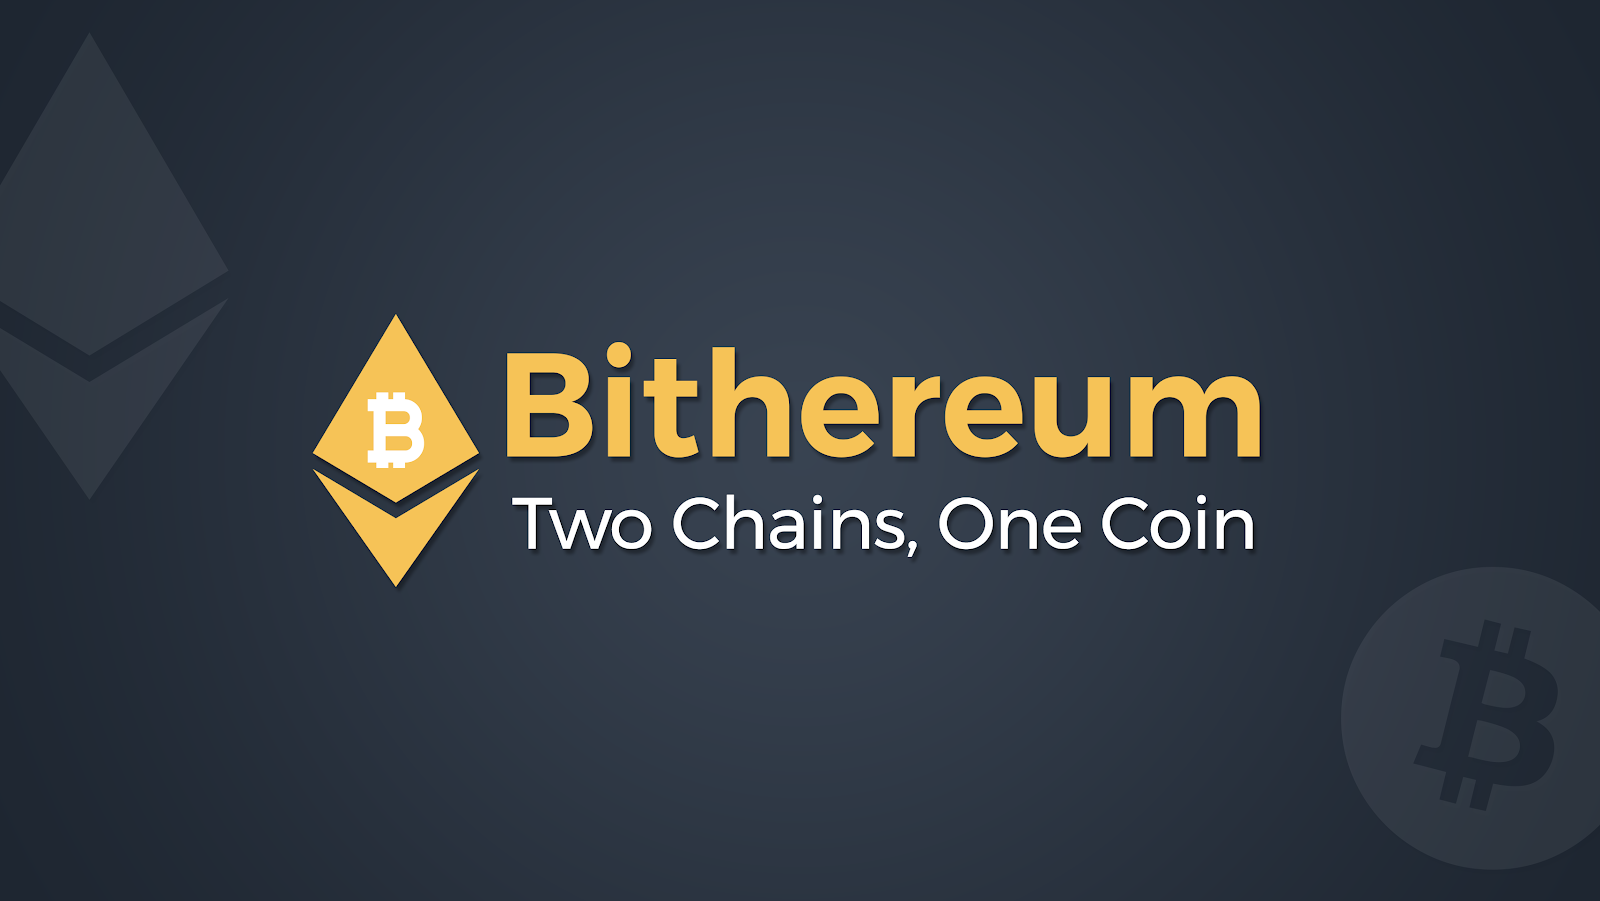 Bitcoin Fork Bithereum Launches Coin to Revolutionize Cryptocurrency Mining